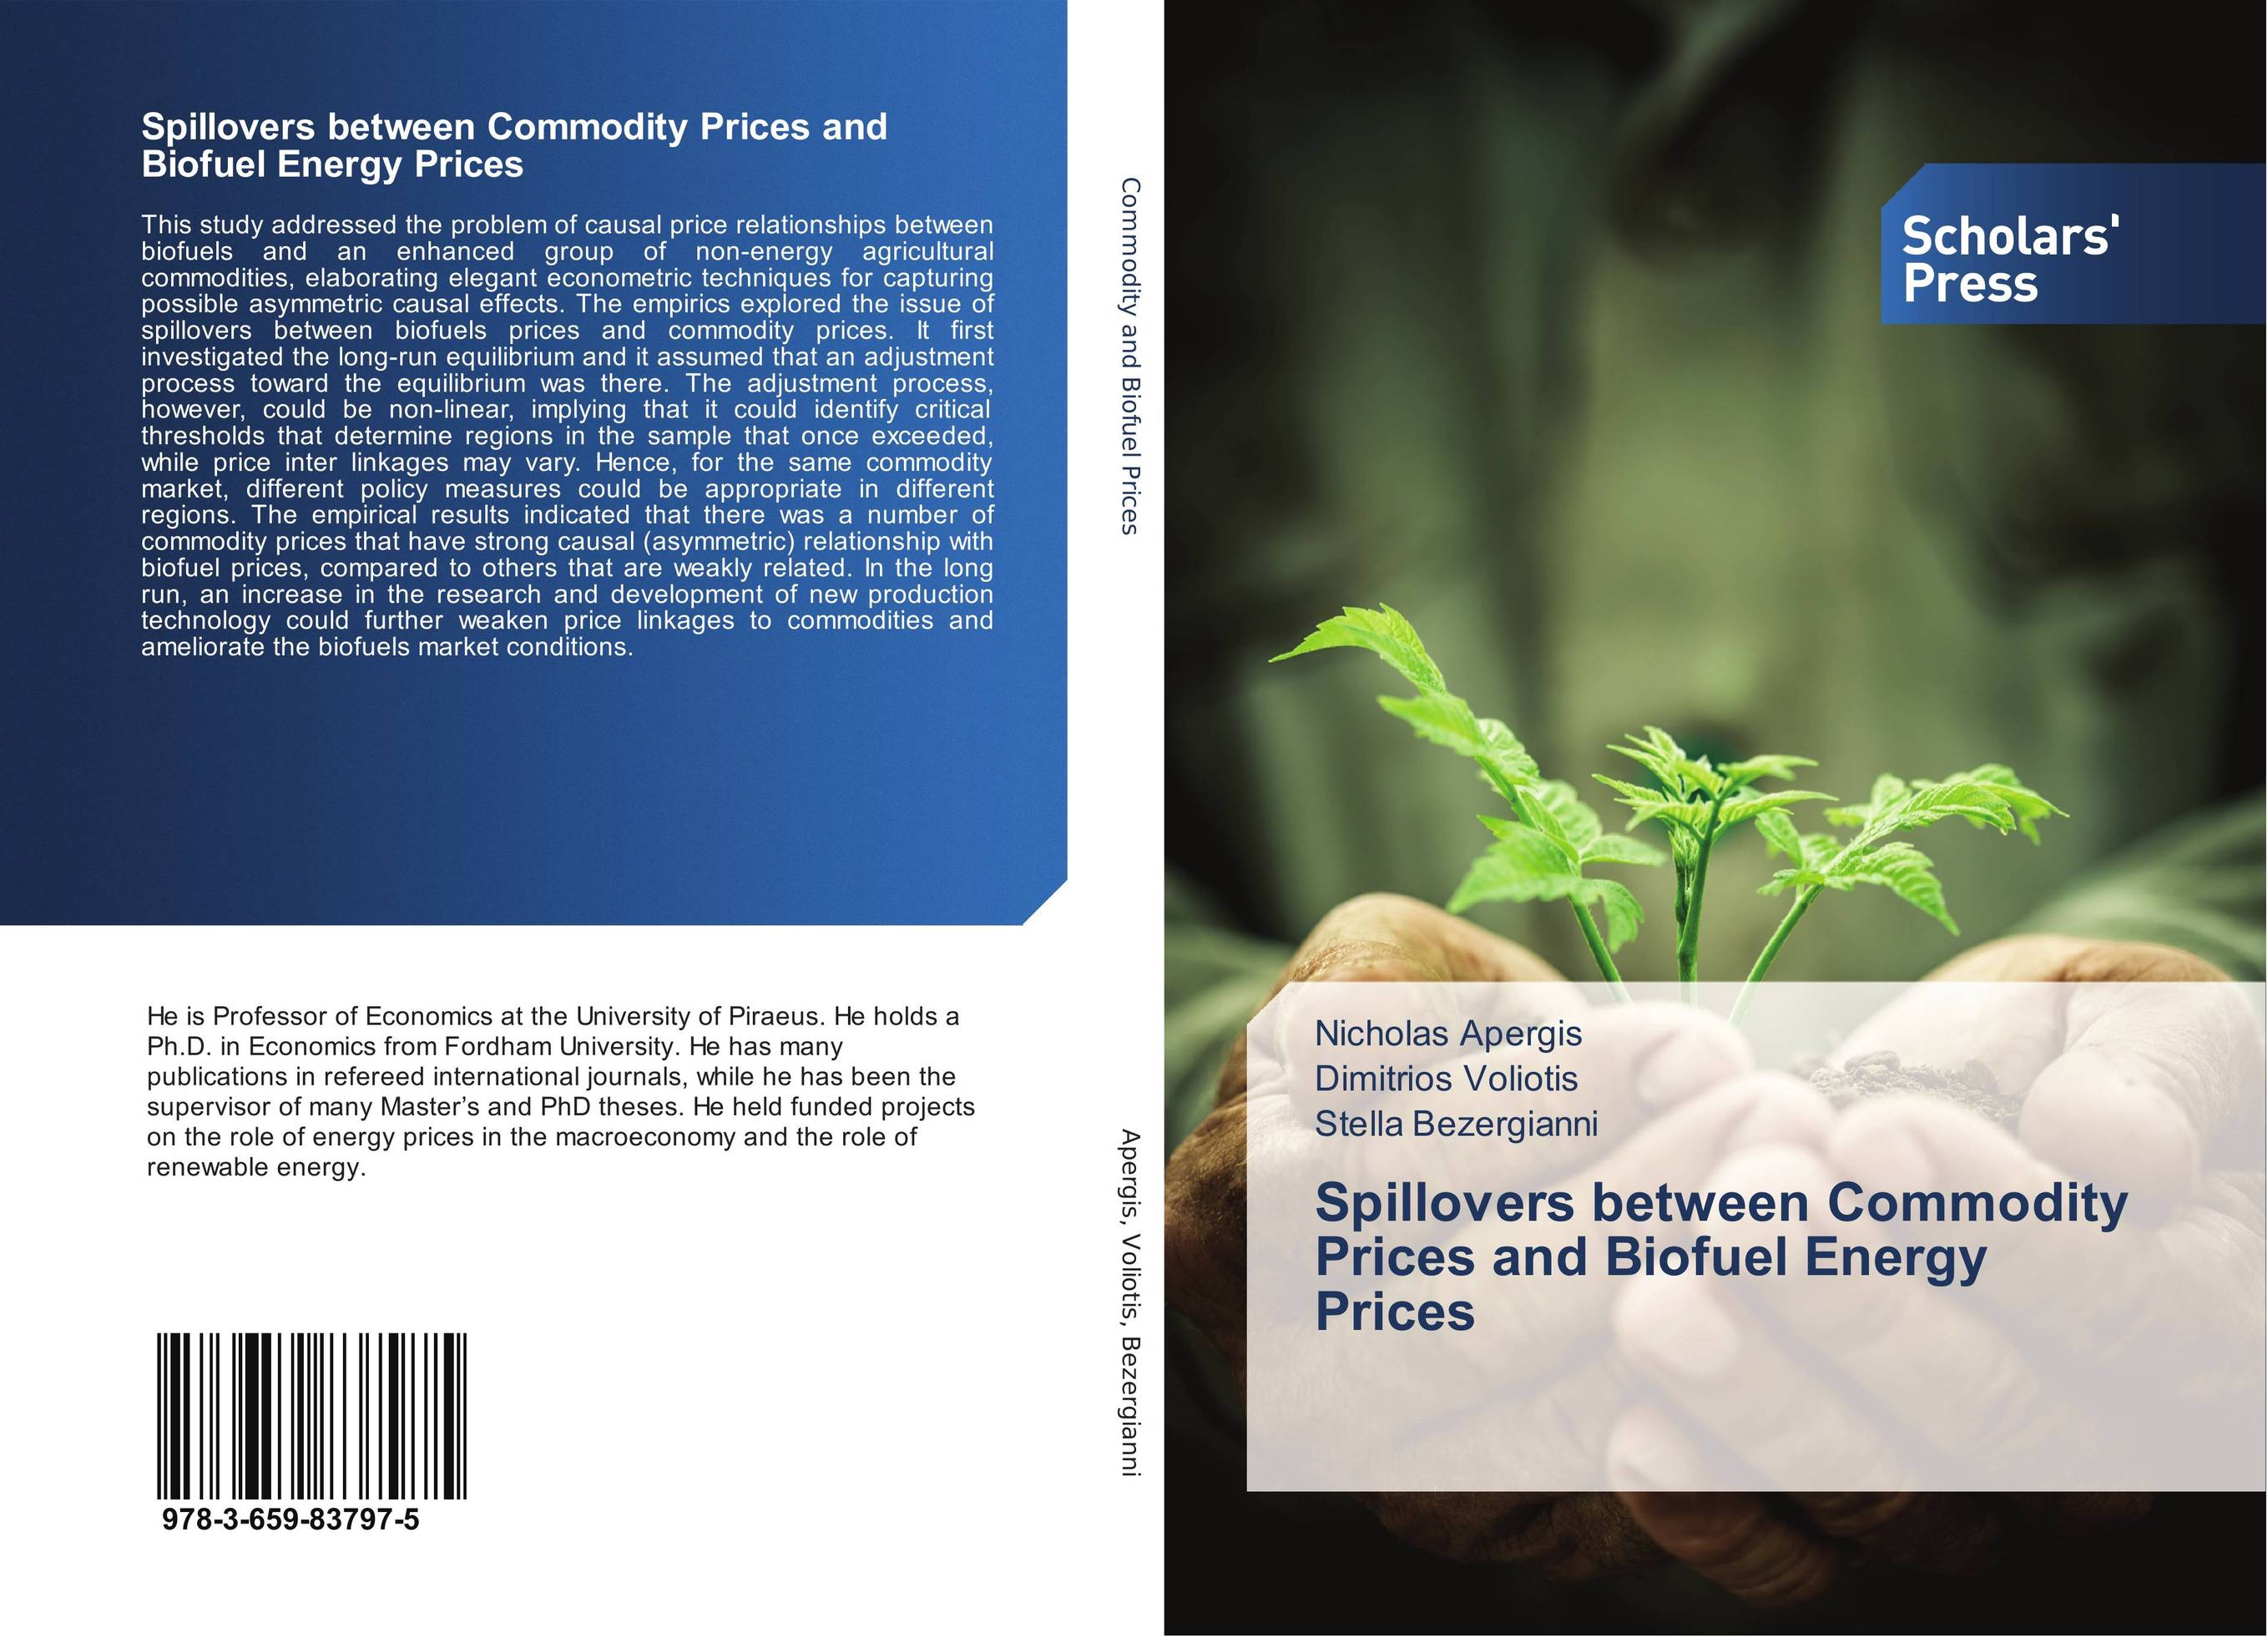 Spillovers between Commodity Prices and Biofuel Energy Prices